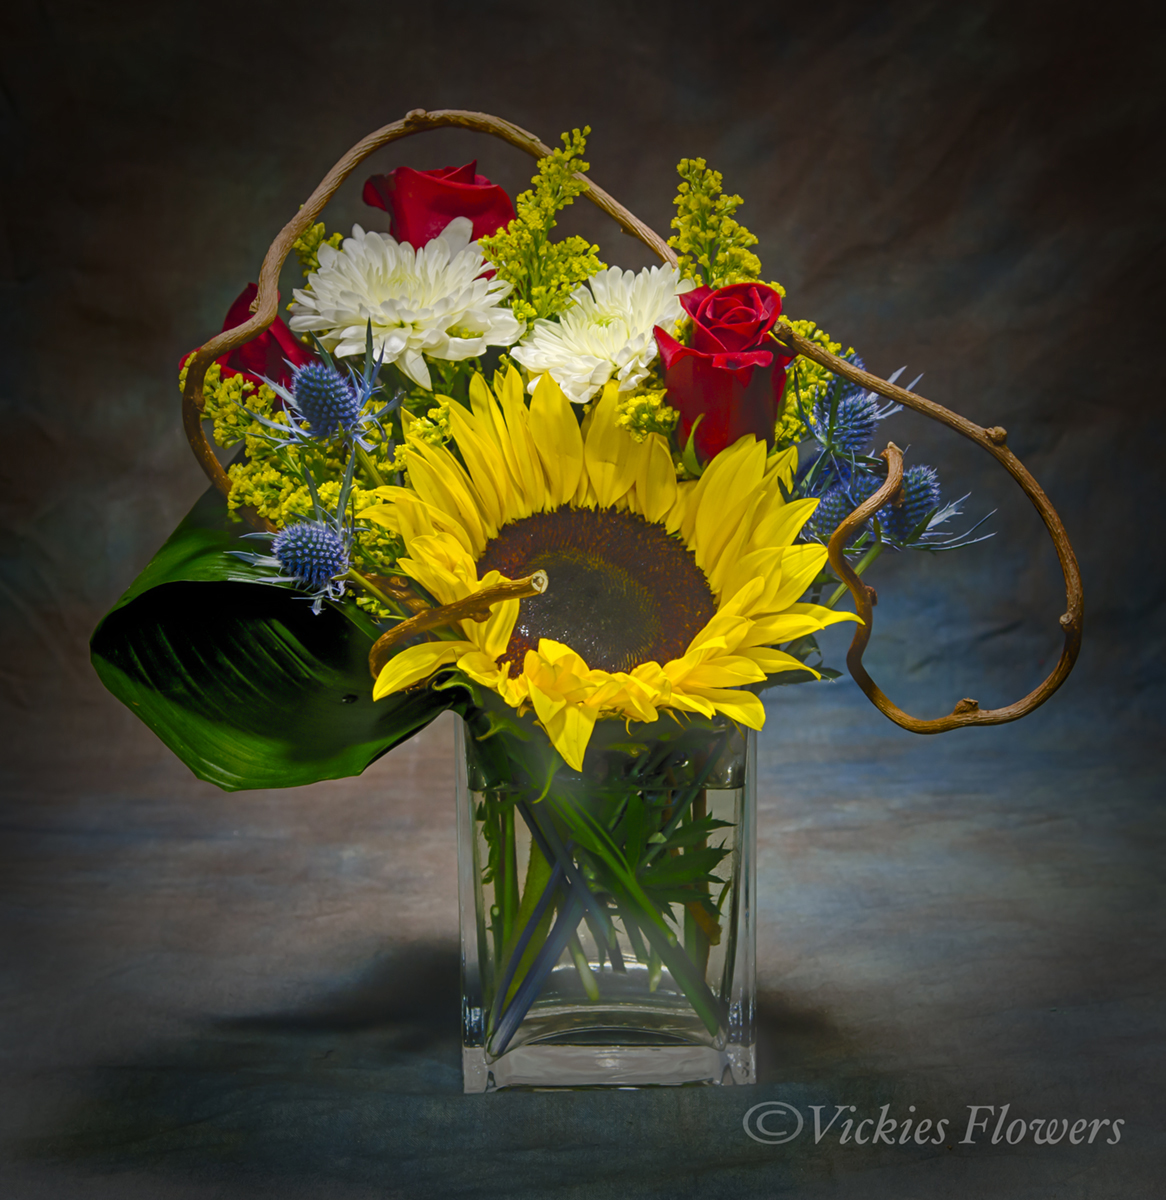 Photograph of Beautiful and brightly colored spring and summer arrangement of Yellow Sunflower, red Roses, Daisies in a clear glass vase.